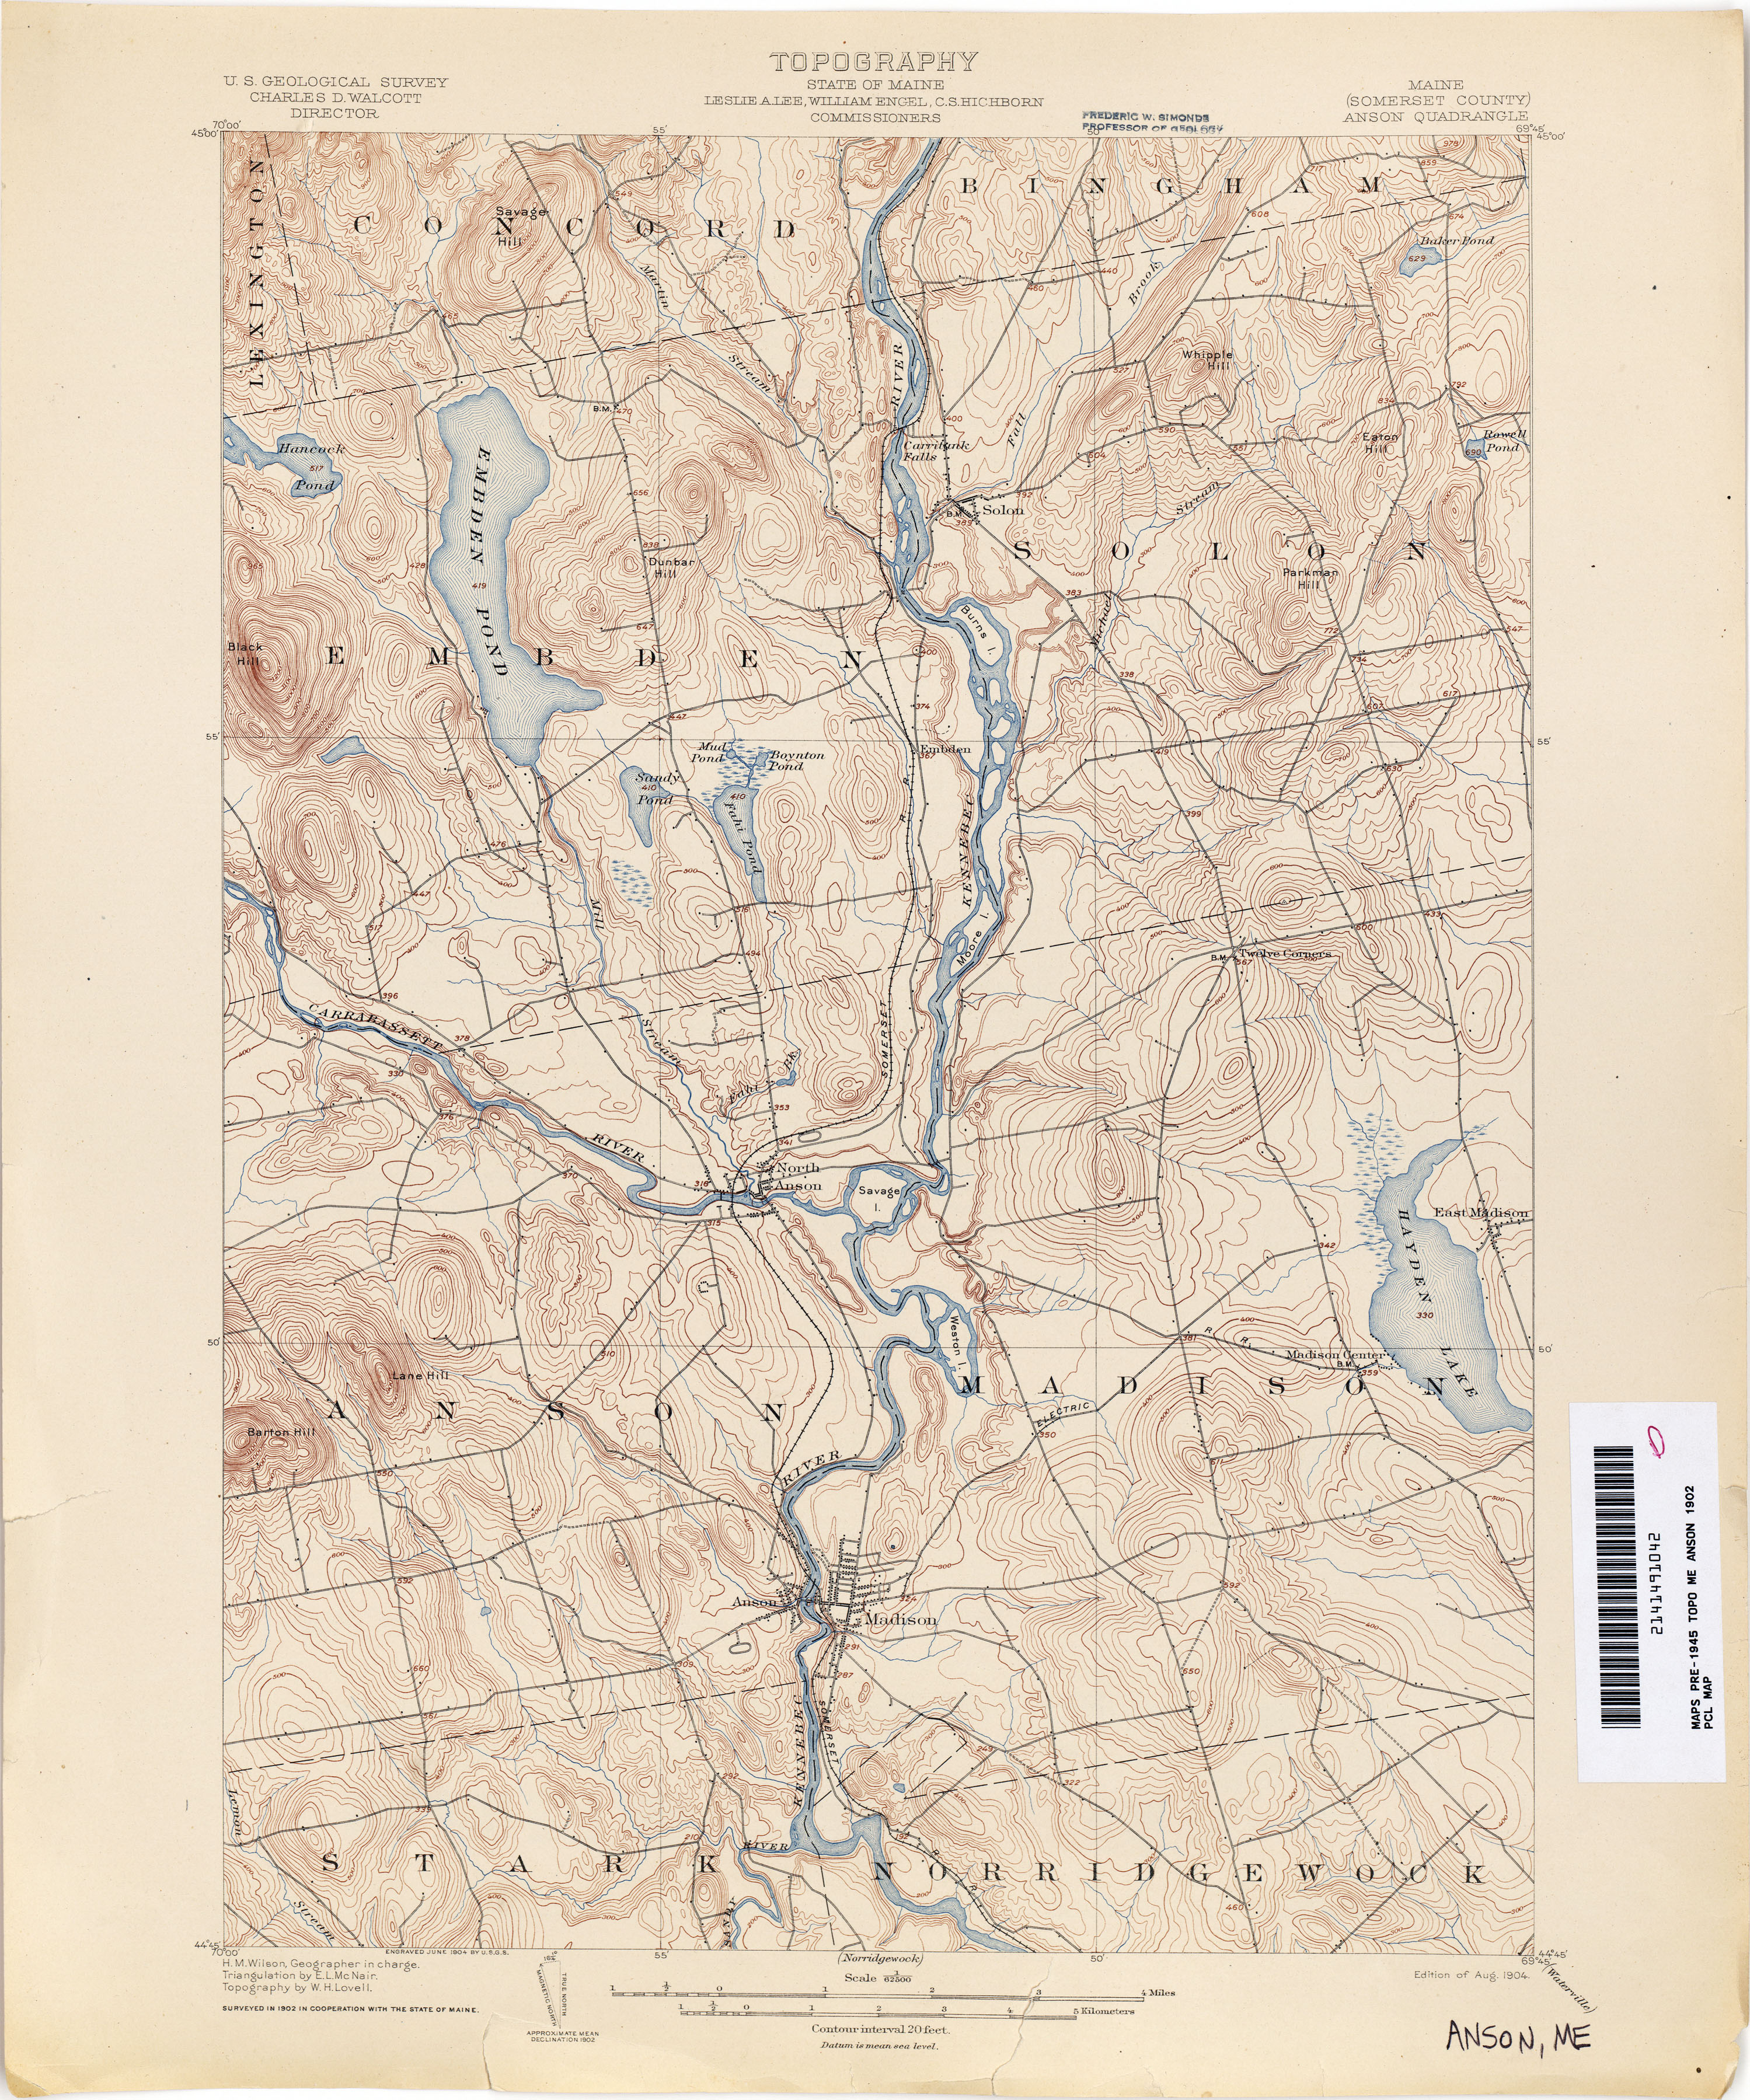 Maine Historical Topographic Maps PerryCastañeda Map Collection - Google topographic maps online